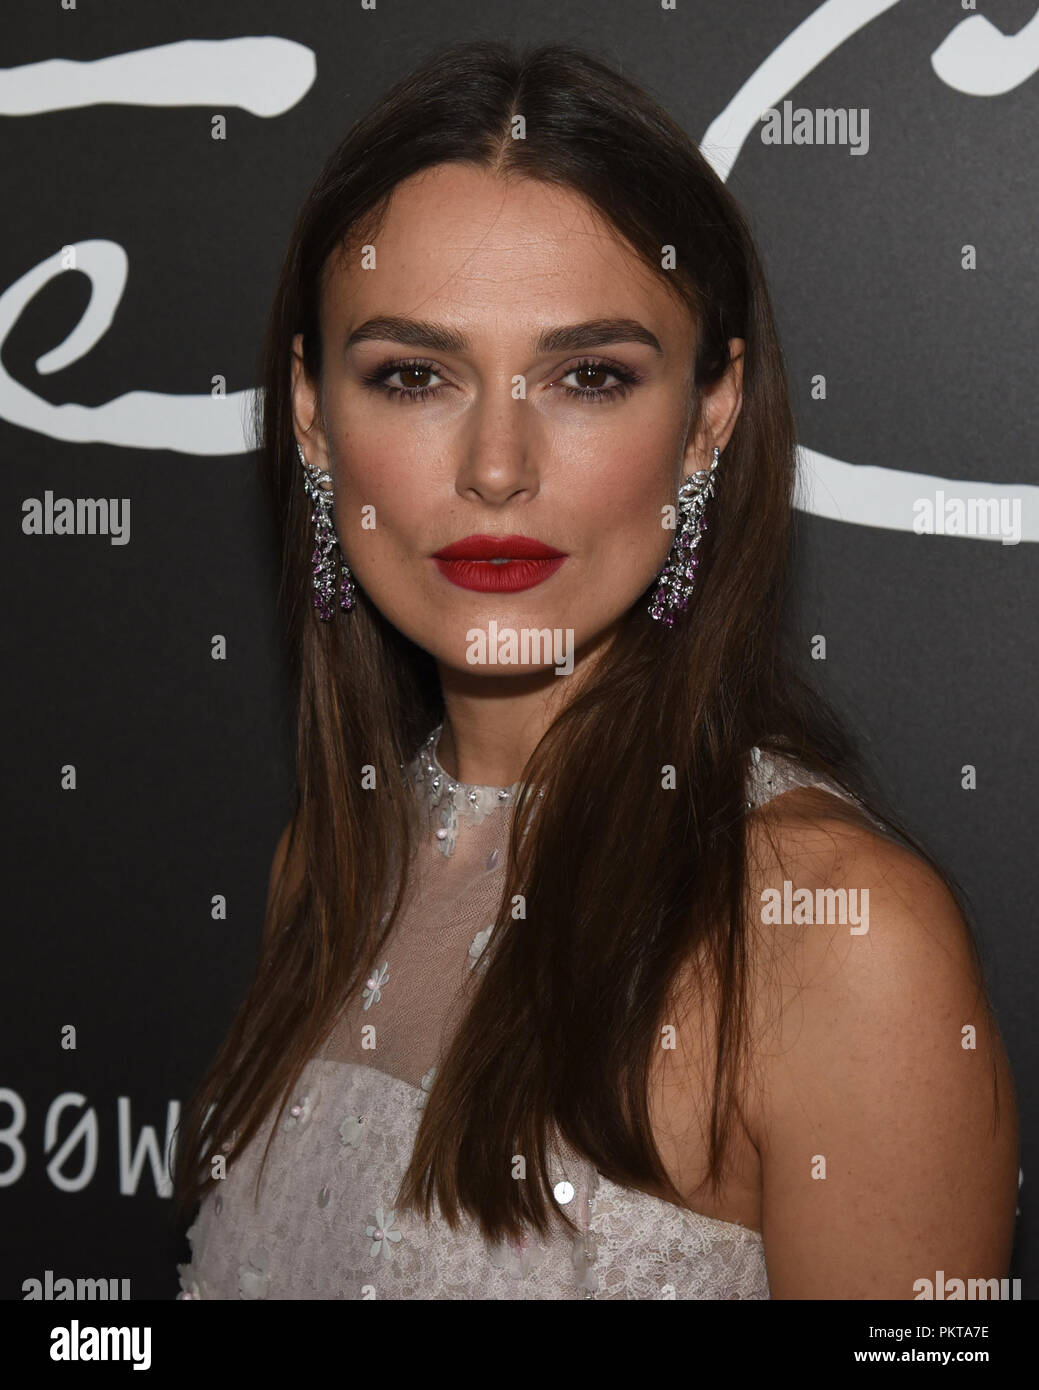 Beverly Hills, California, USA. 14th Sep, 2018. KEIRA KNIGHTLEY attends the Premiere Of Bleecker Street Media's 'Colette' at Samuel Goldwyn Theater in Beverly Hills. Credit: Billy Bennight/ZUMA Wire/Alamy Live News - Stock Image